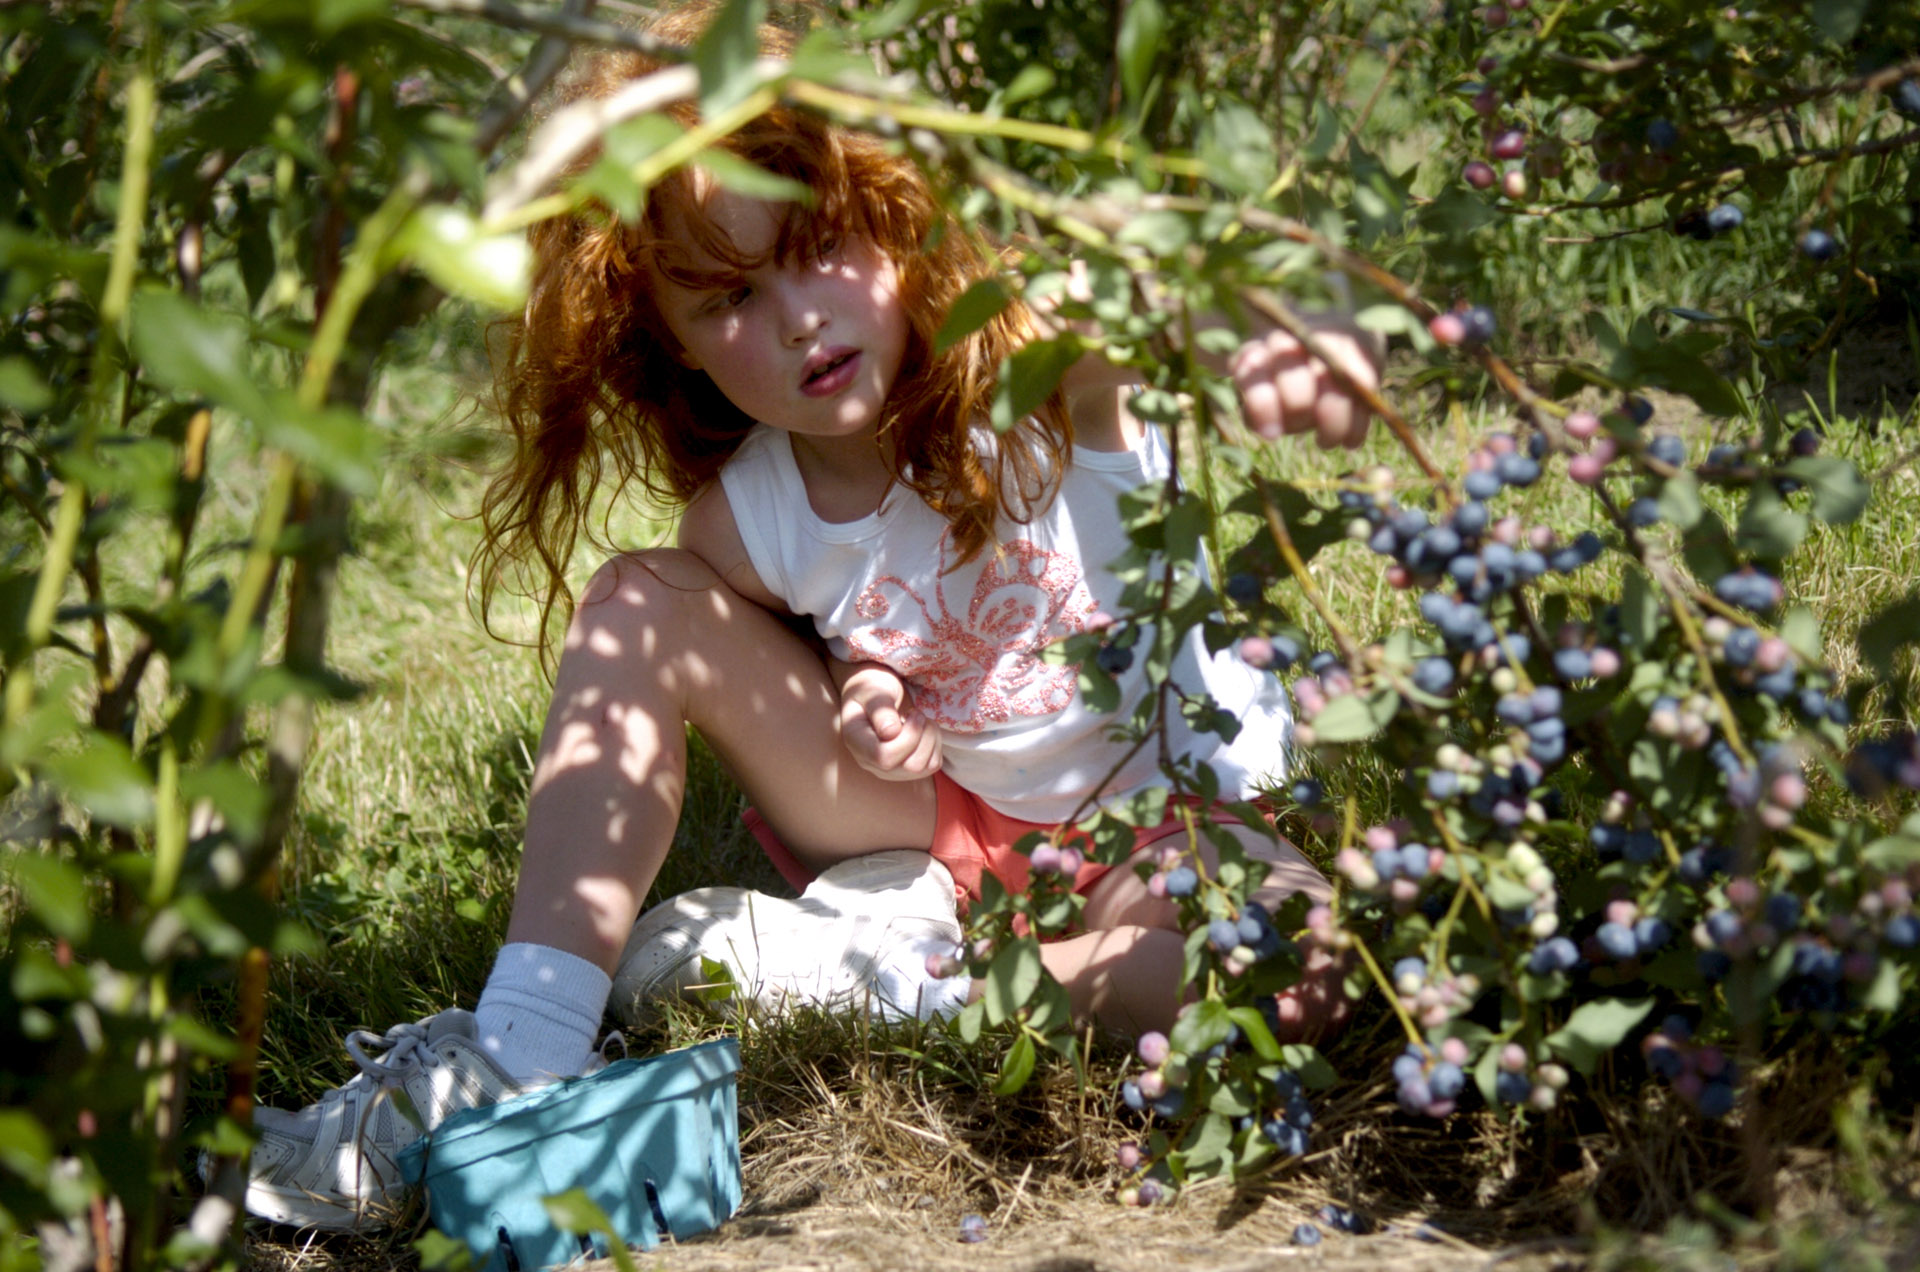 LeeAnn Czujak, 7, of Seymour, picks blueberries with her father at Jones Family Farms in Shelton on Thursday, July 22, 2010.